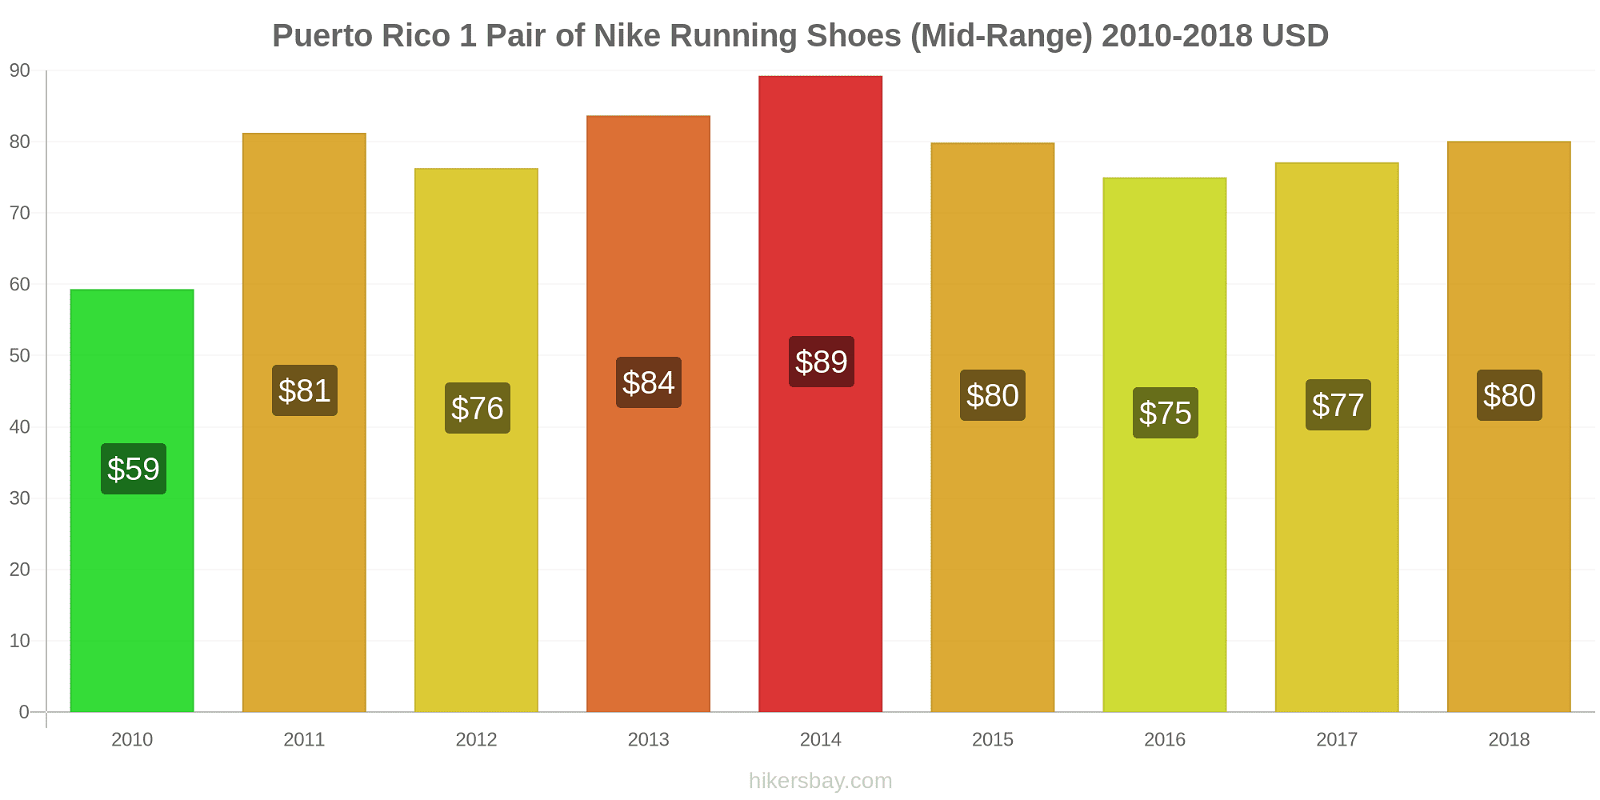 Puerto Rico price changes 1 Pair of Nike Running Shoes (Mid-Range) hikersbay.com